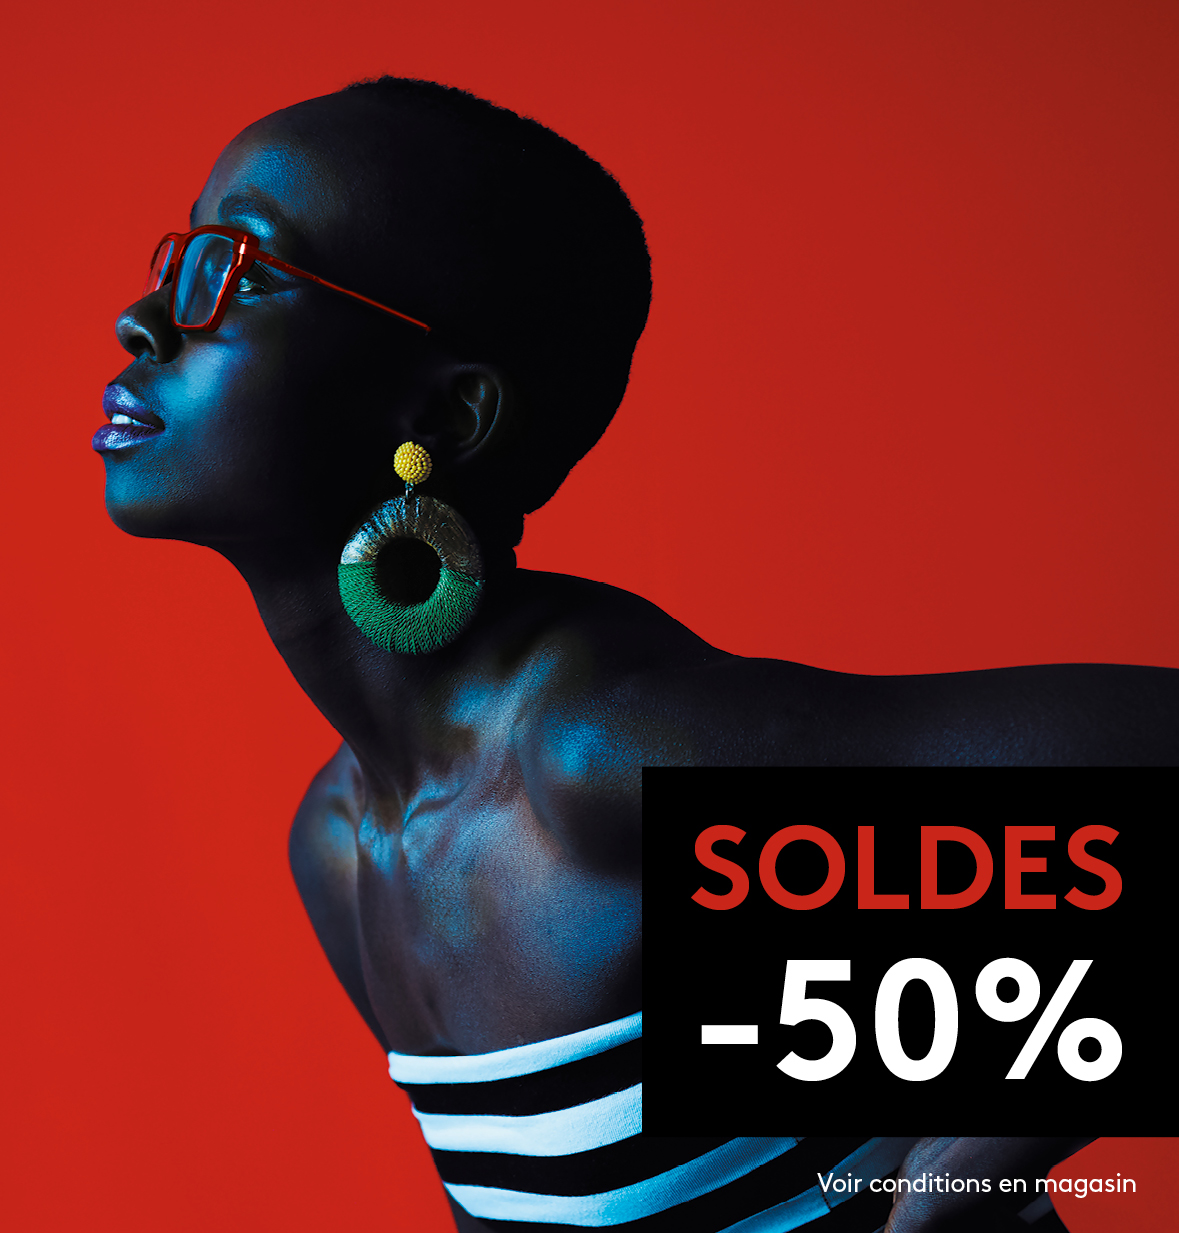 optic2000-offre-soldes-50%